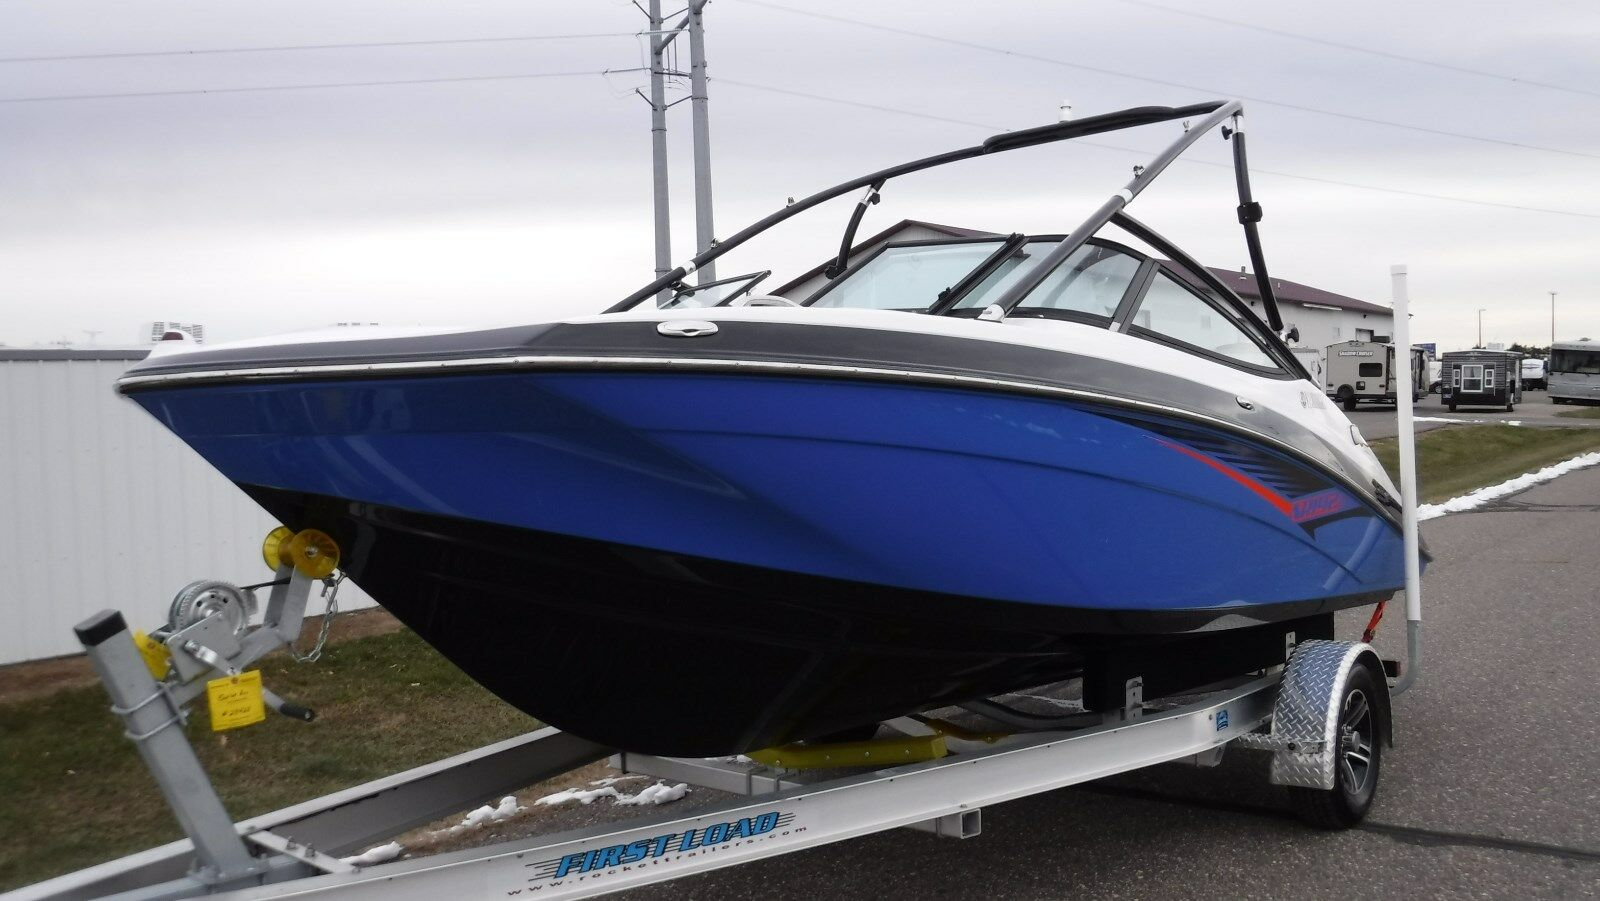 2014 YAMAHA AR192 JET BOAT SKI WATERSKI FAMILY SPEED RIVER BOAT FAST LOW HOURS